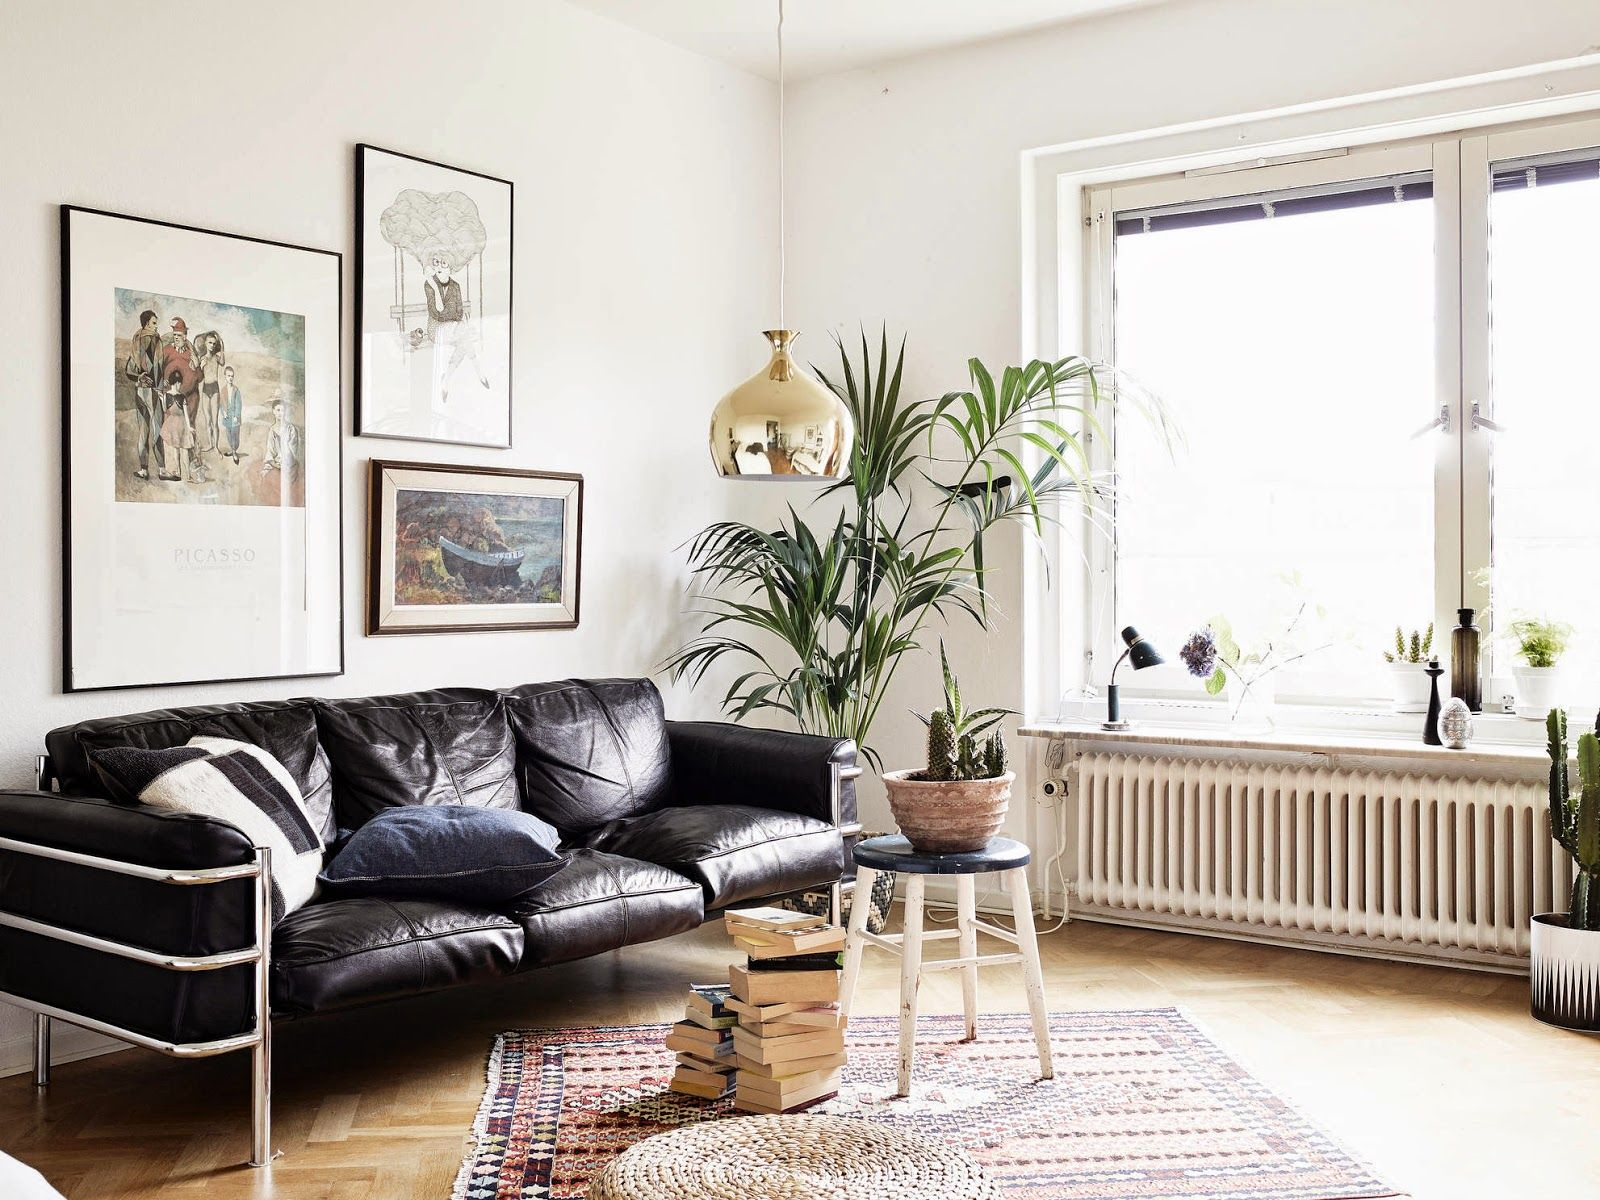 A small space with a big personality | Small spaces, Personality and ...